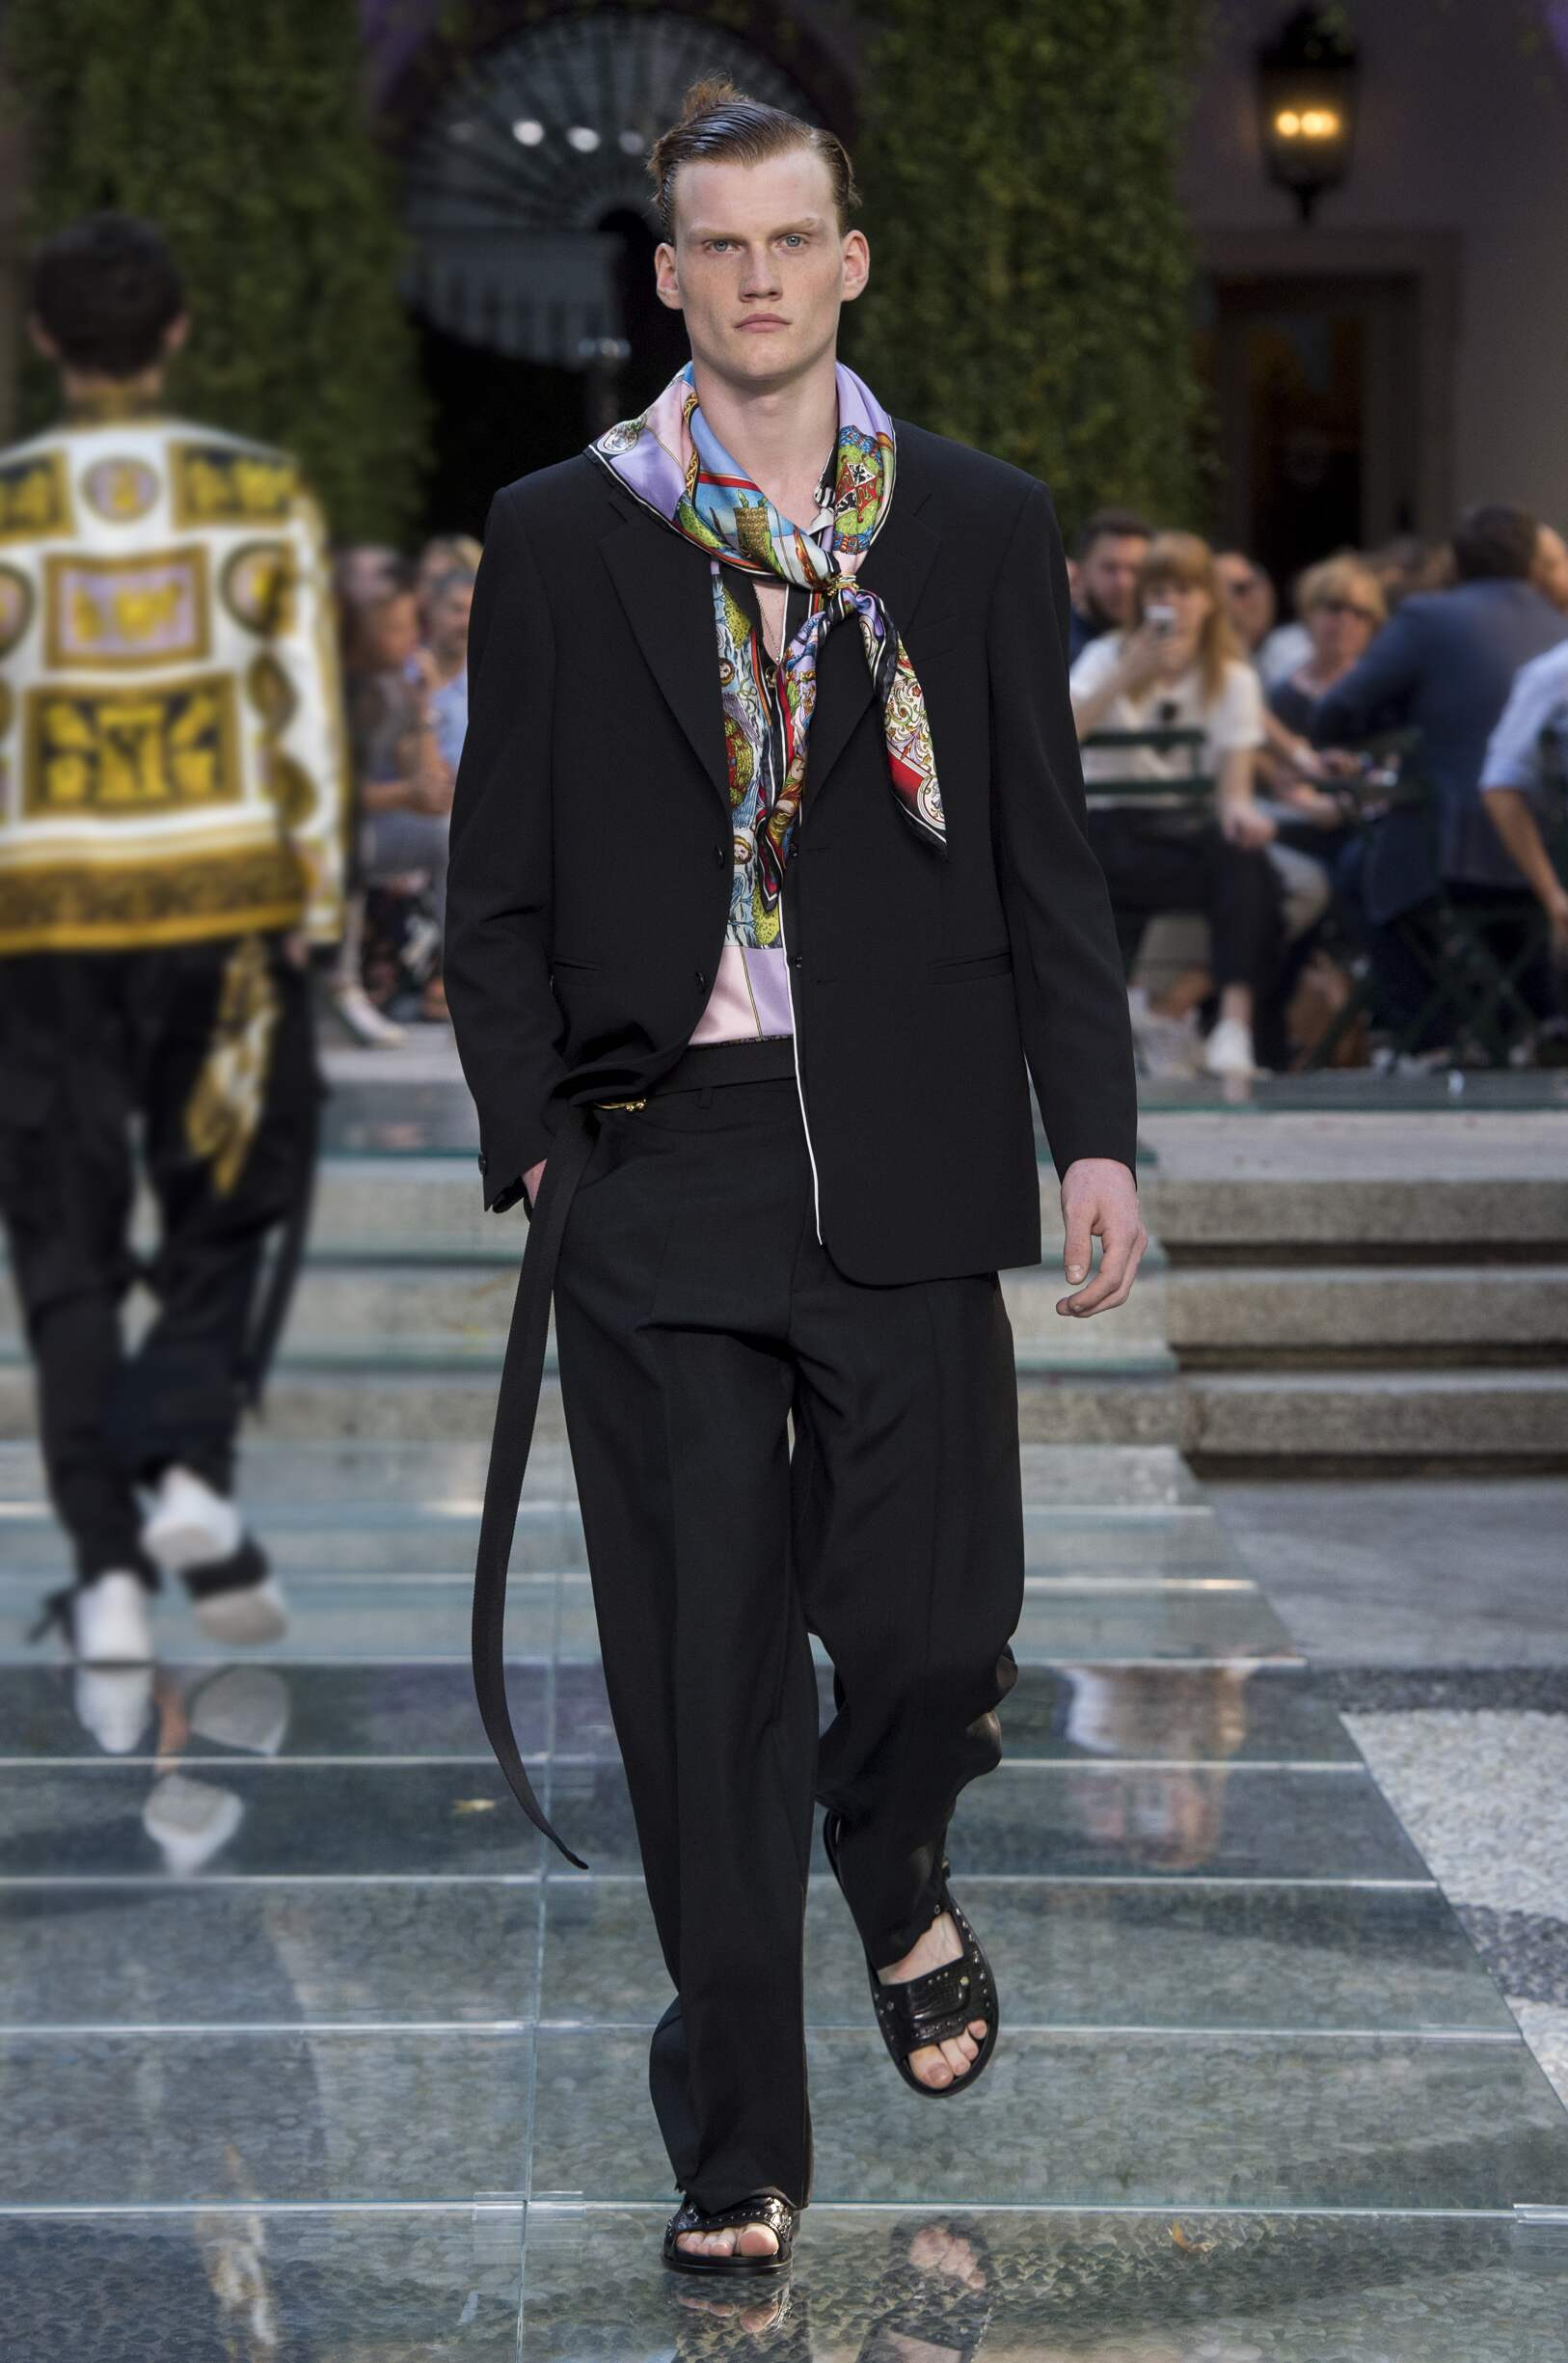 961a7241f5 VERSACE SPRING SUMMER 2018 MEN'S COLLECTION | The Skinny Beep